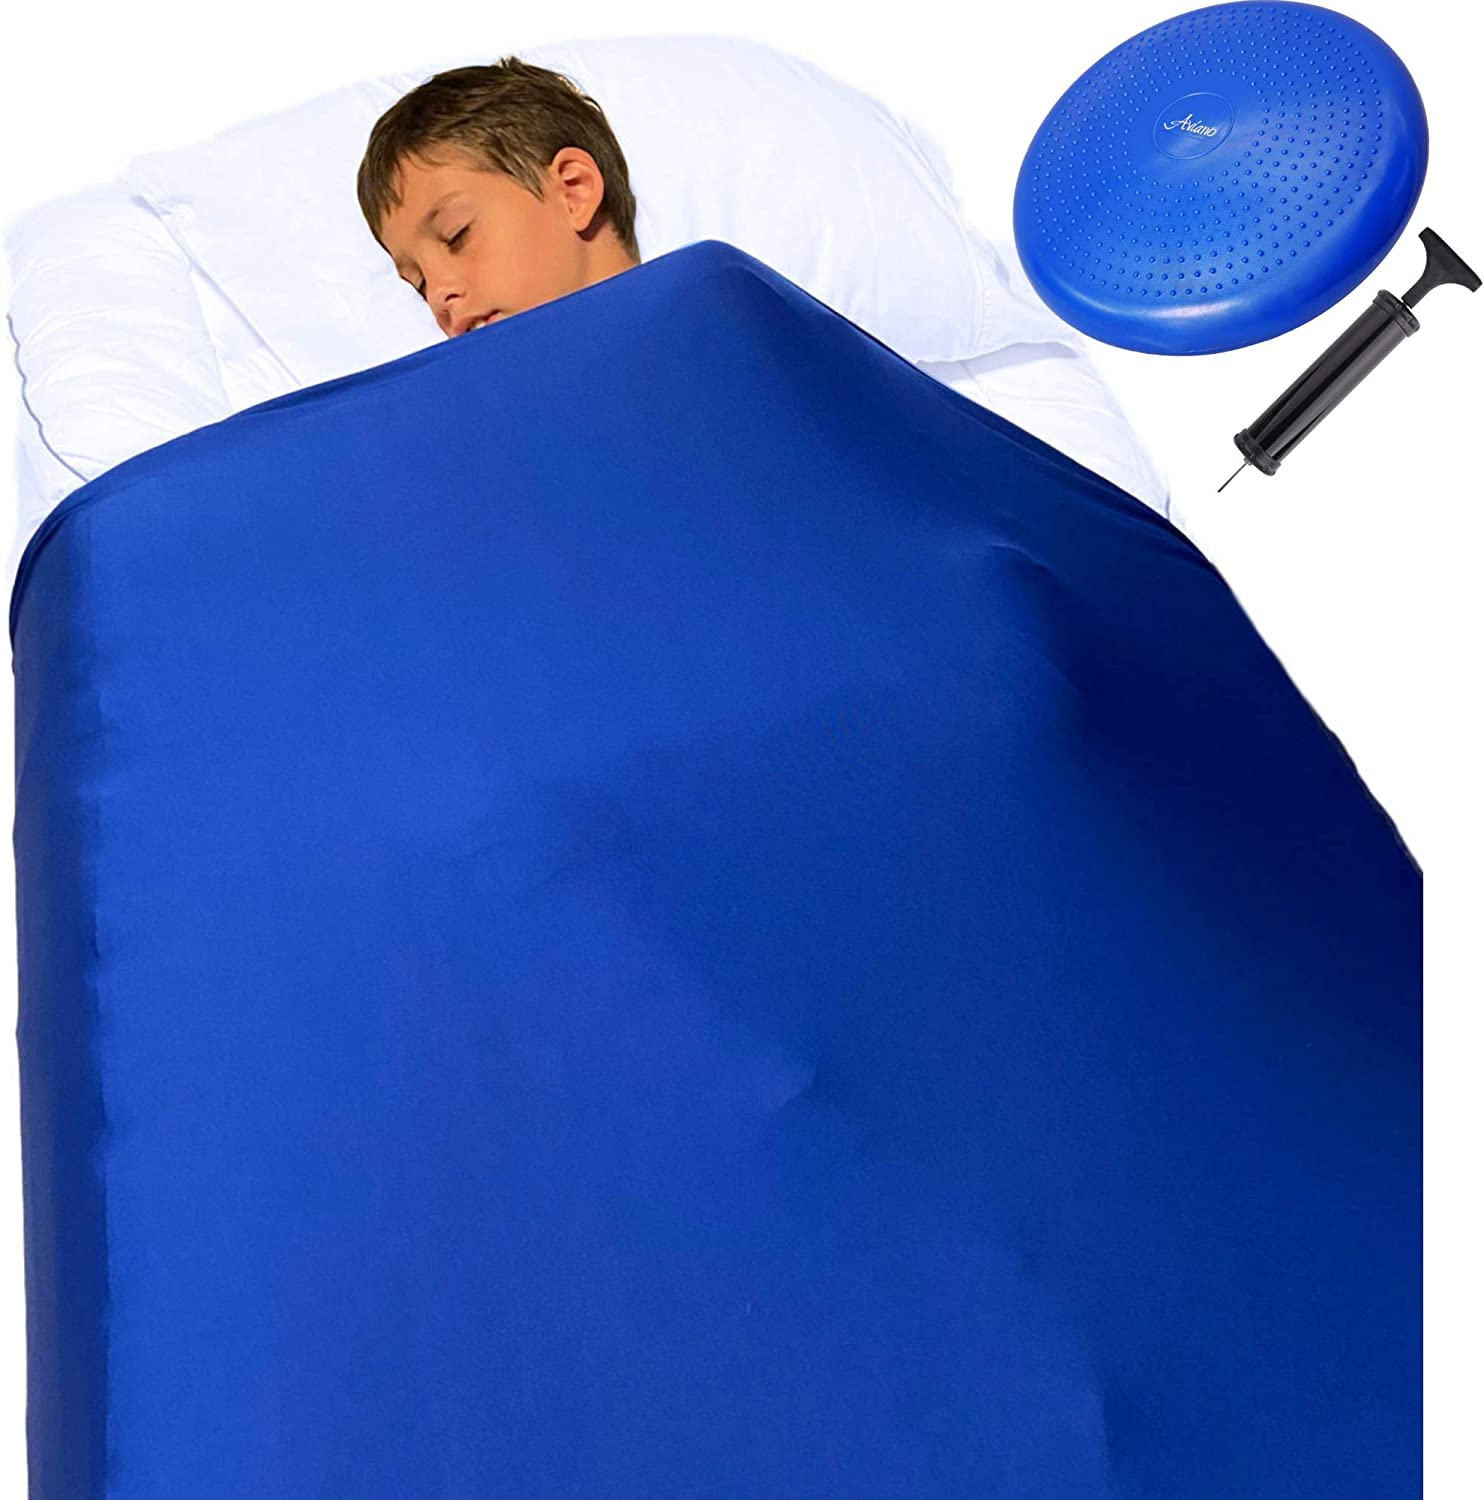 Sensory Compression Blanket for Kids – Plus Wobble Seat Cushion, Breathable Compression Sheet Twin and Wiggle Disc, Sensory Sheets for Focus and Sleep for Autism, Sensory Processing Disorder ADHD Blue